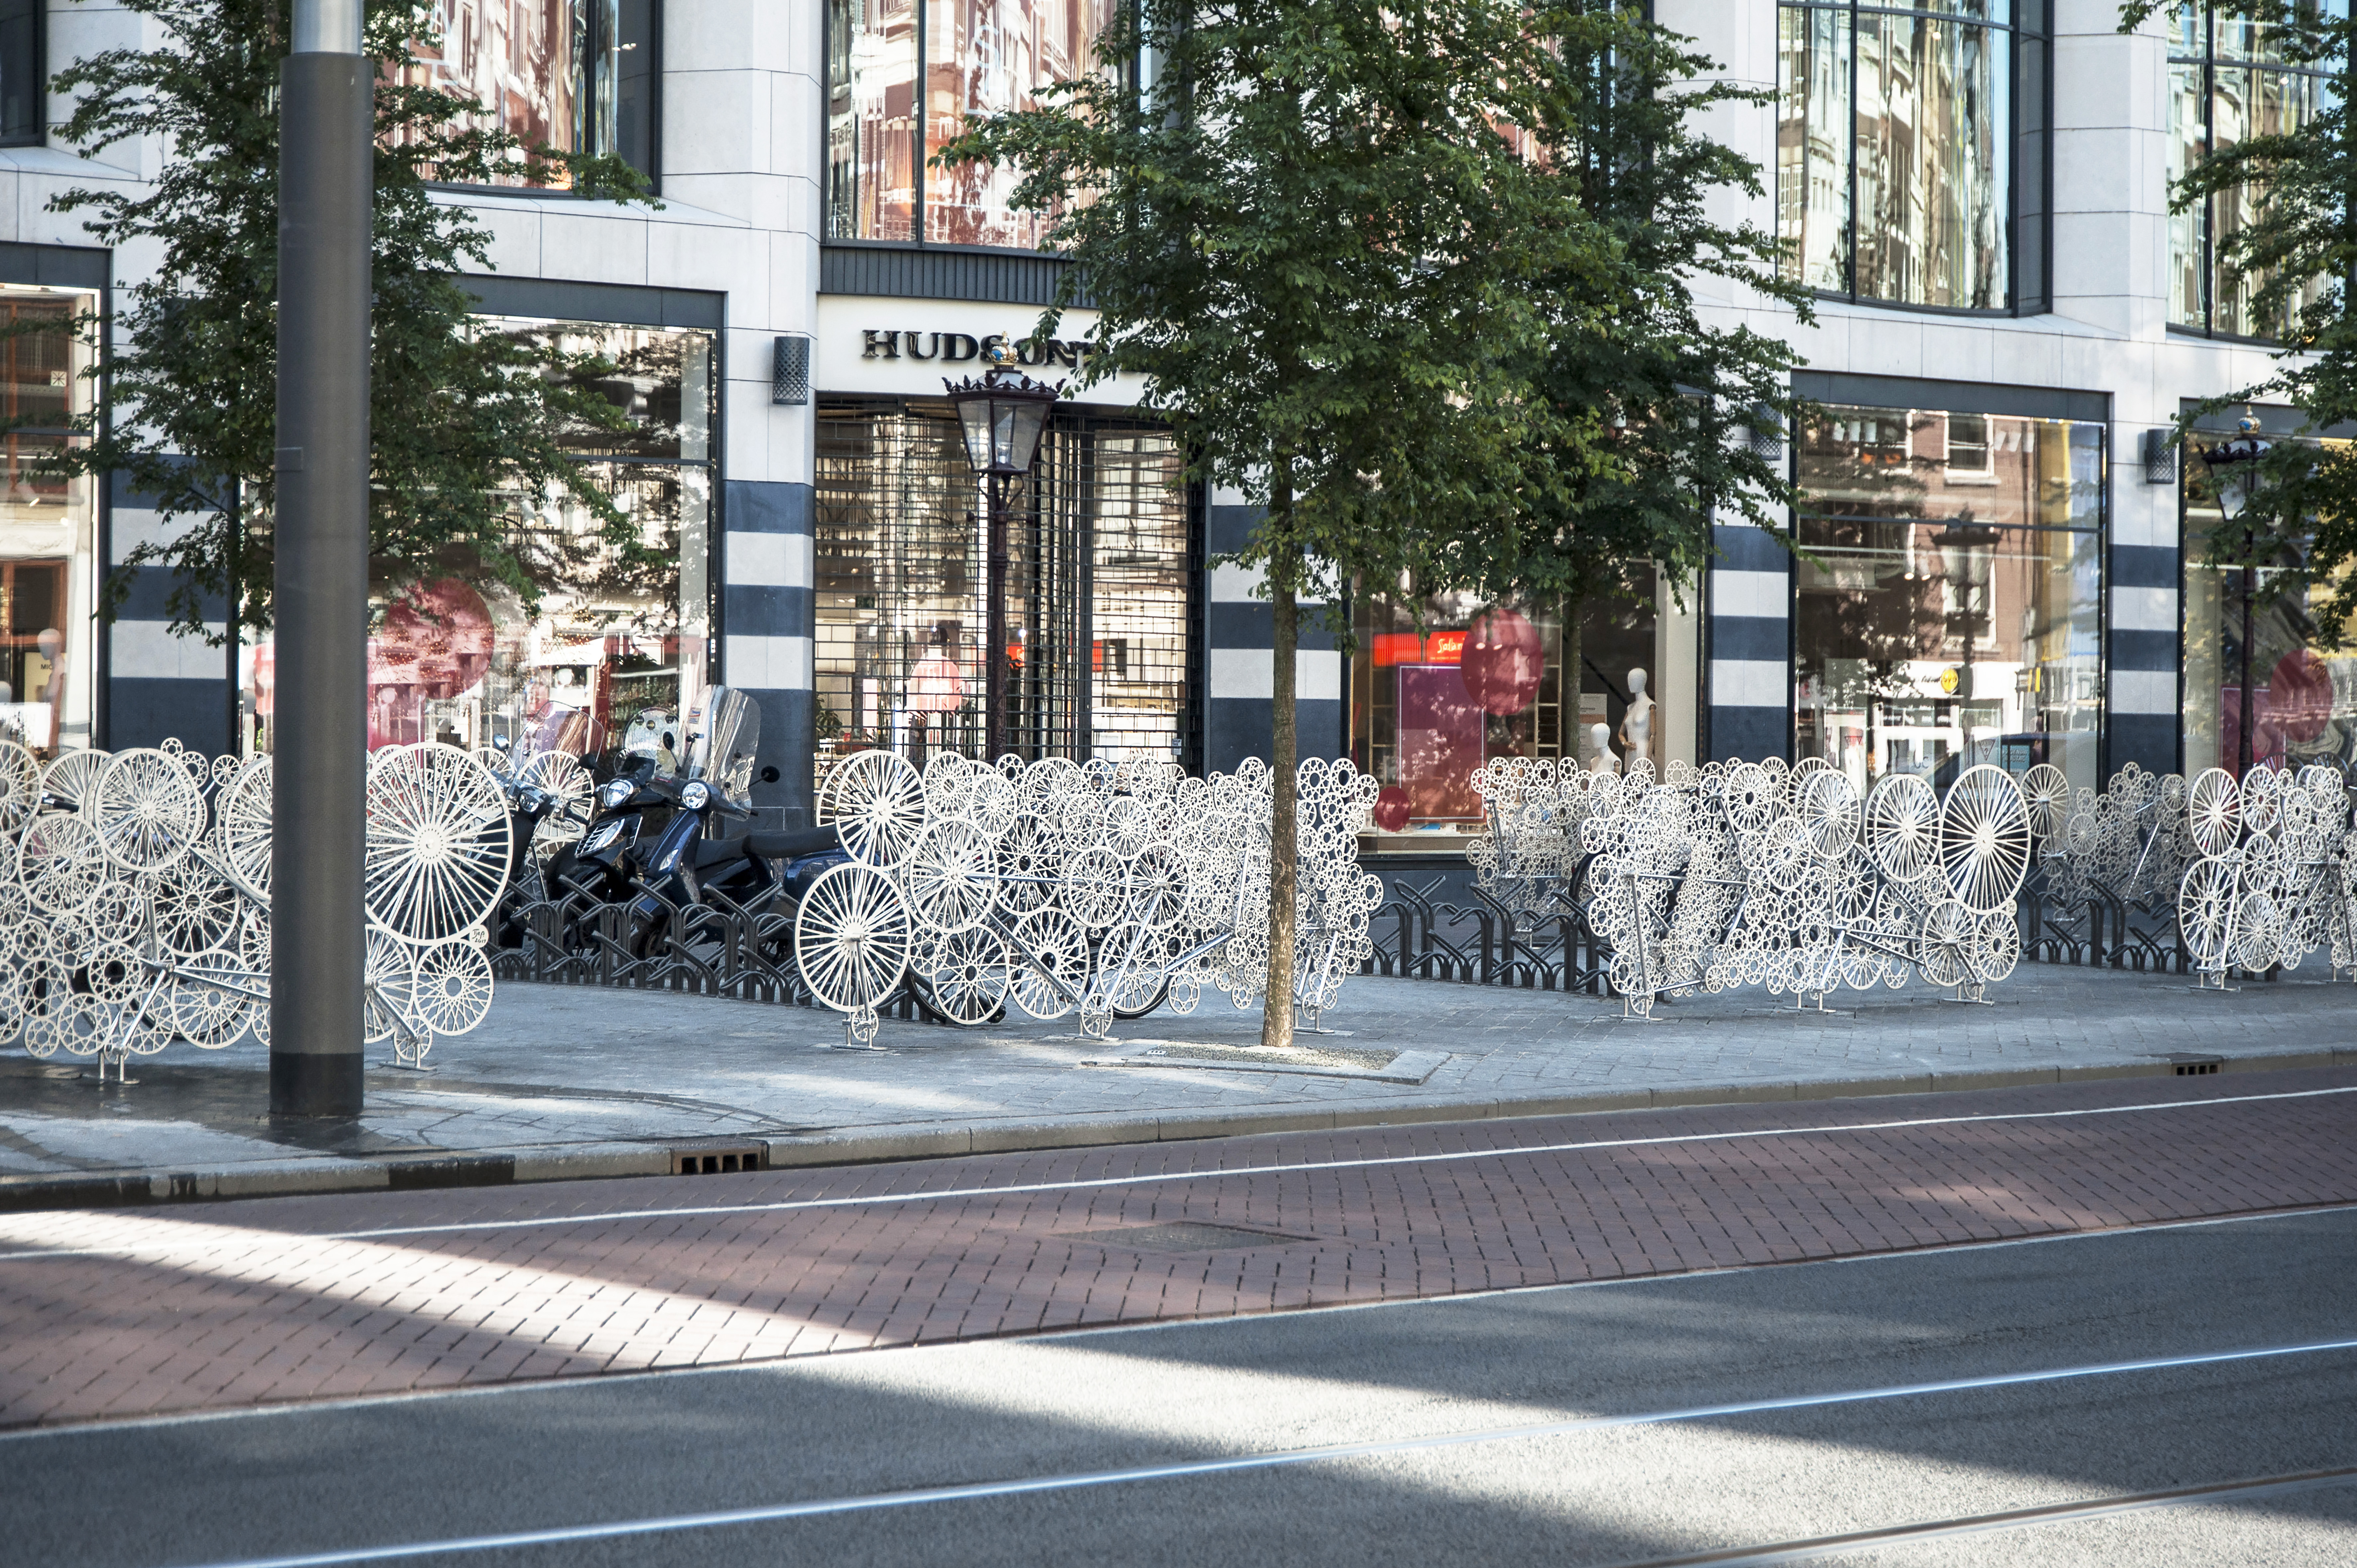 Bicycloud Fence Rokin Amsterdam Fietsenstalling Bicycle Fence Hek